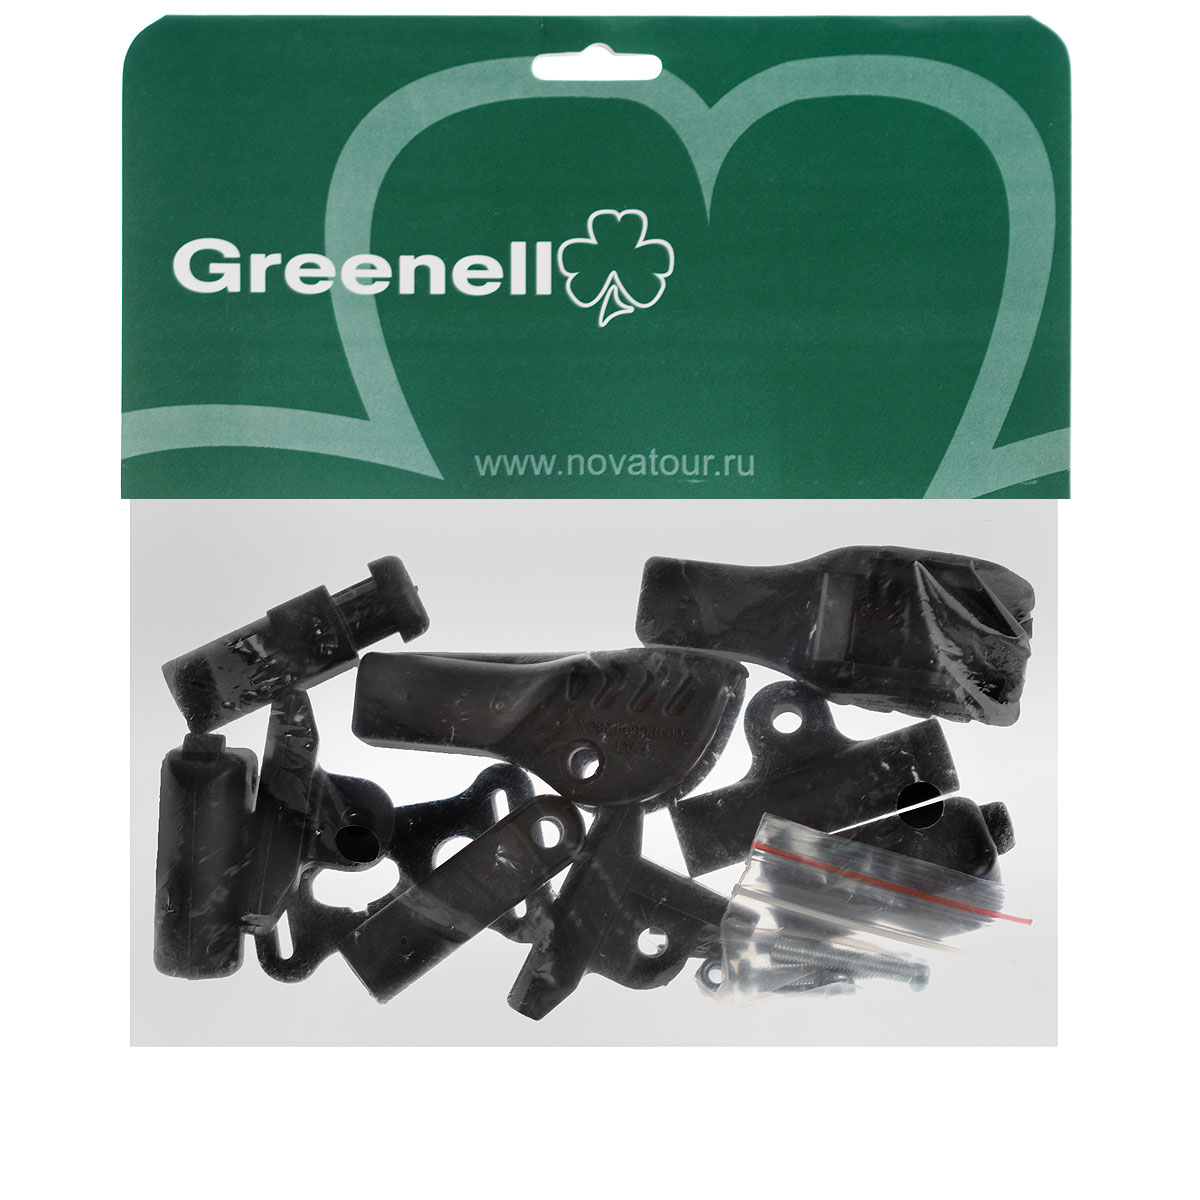 "Ремкомплект Greenell ""№1"", для палаток: Aughris 2, Castlerea 4, Clare 3, Dingle 3, Dingle light 3, Howth 4, Larne 2, Private, Tralee 2, Tralee 3"